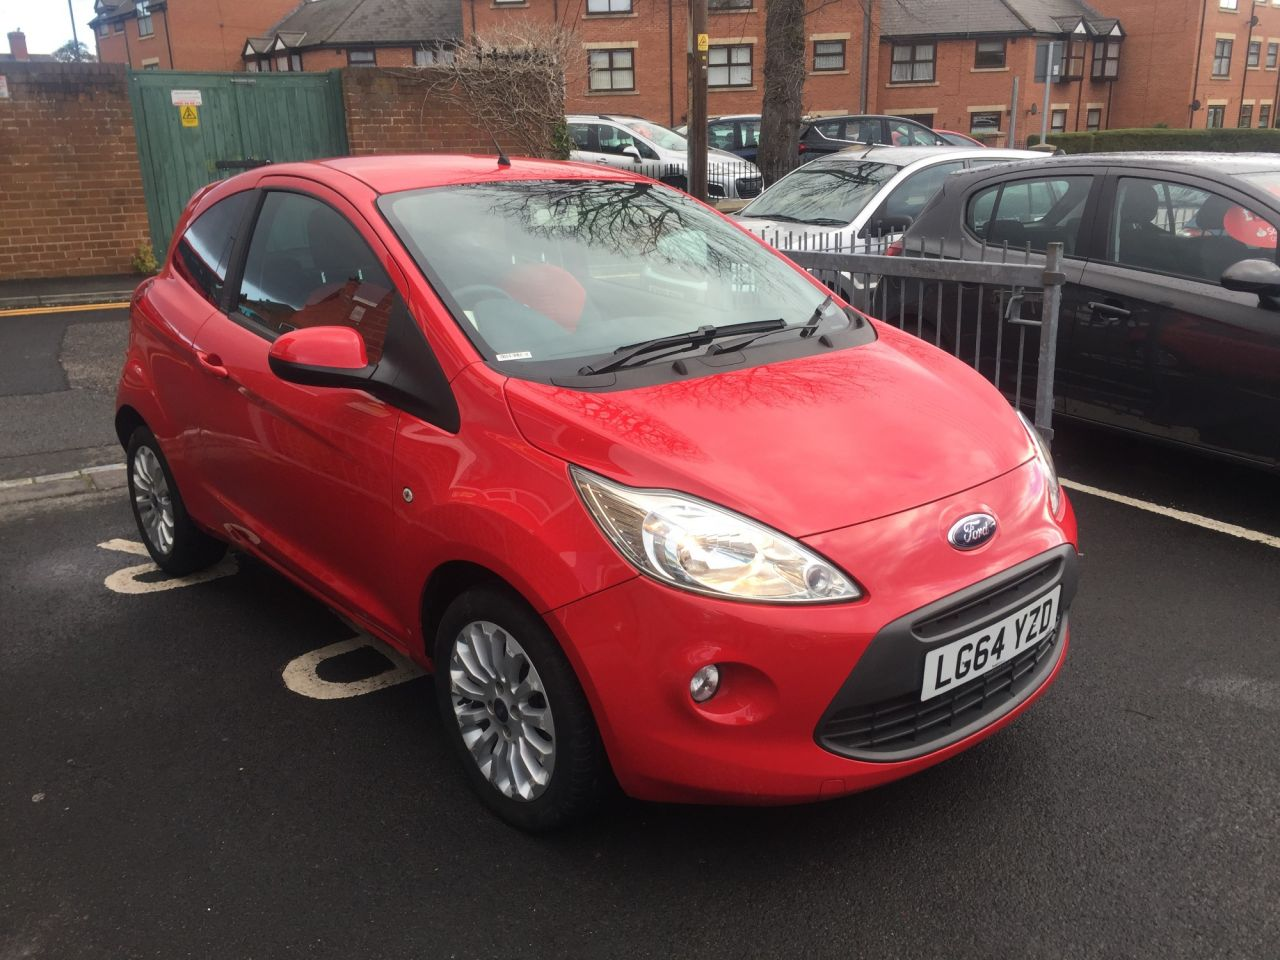 USED 2014 64 FORD KA 1.2 ZETEC 3d 69 BHP ONLY 3129 MILES! CHEAP TO ...